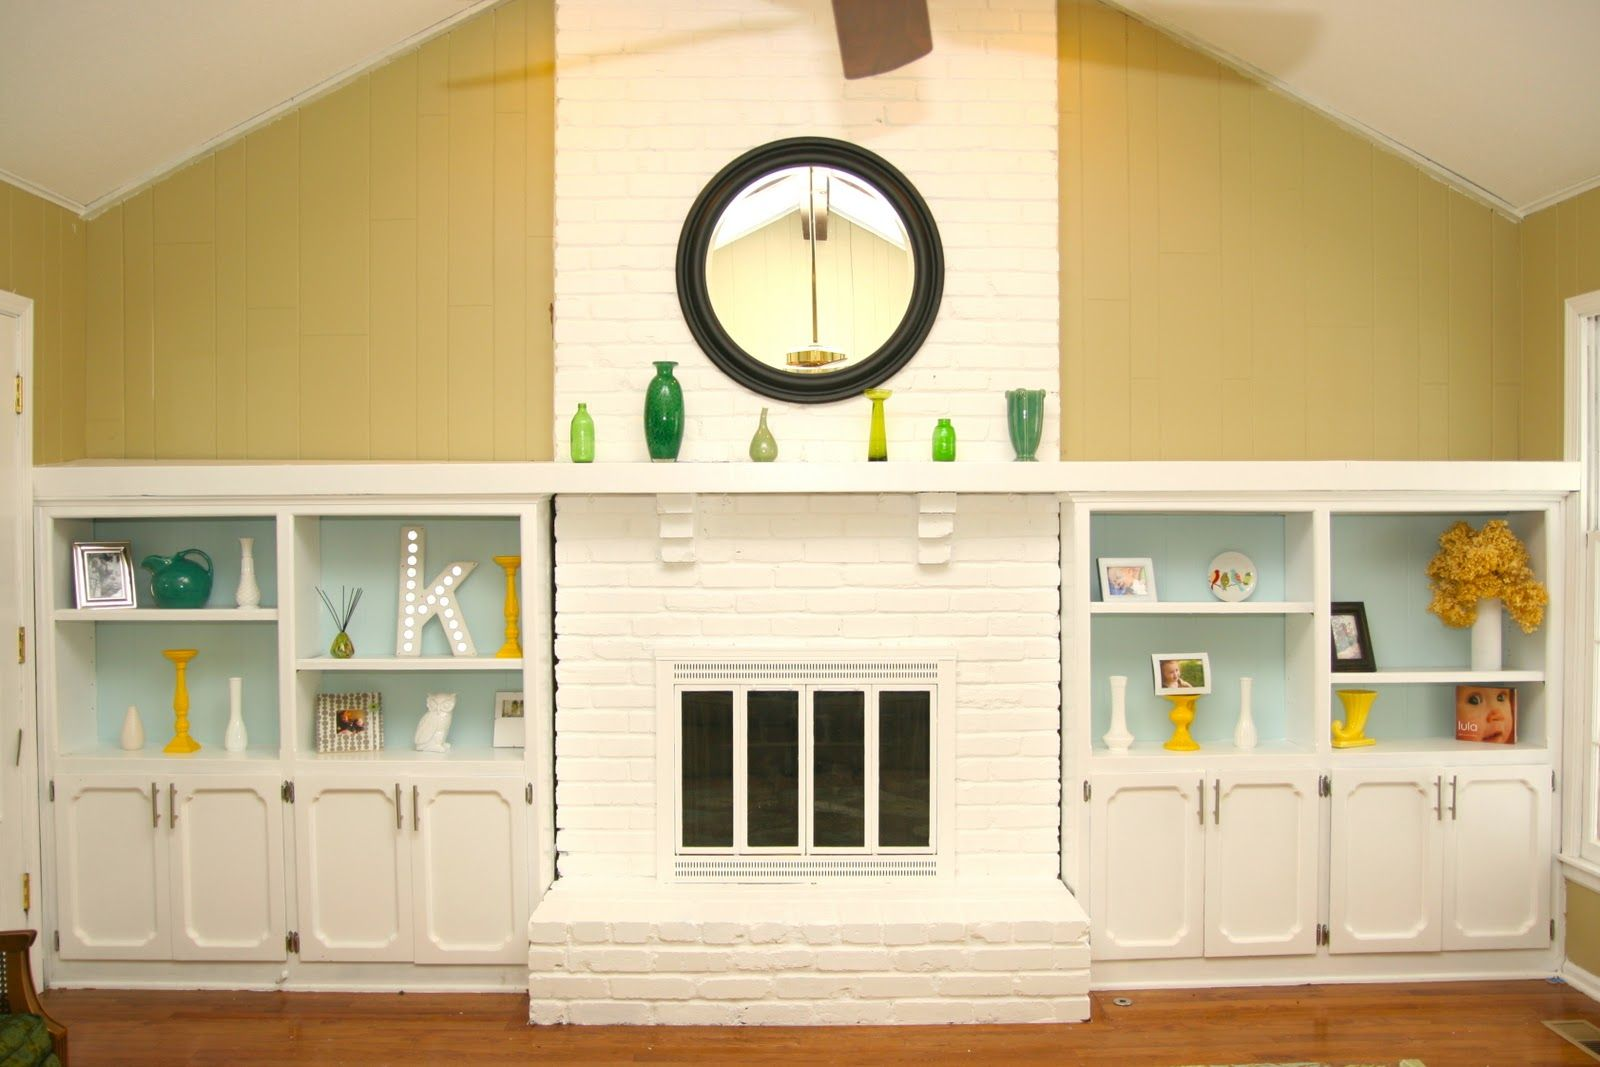 Hot Fireplace Designs for Your Home | fireplace tile ideas ...